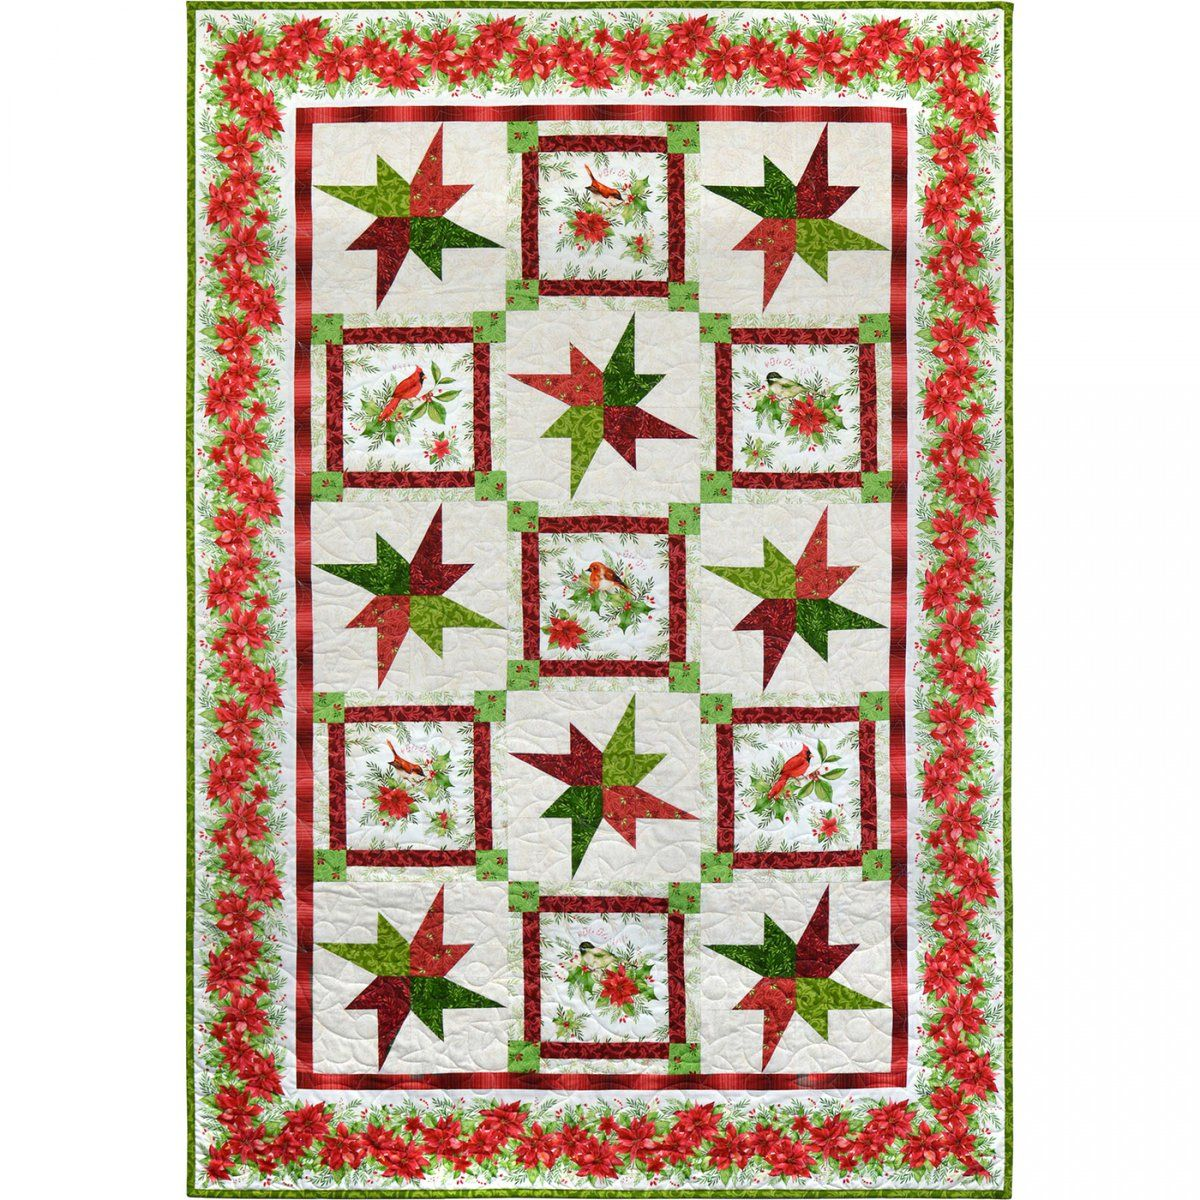 Songbird Christmas Star quilt by Debbie Beaves | christmas ... : debbie beaves quilt patterns - Adamdwight.com